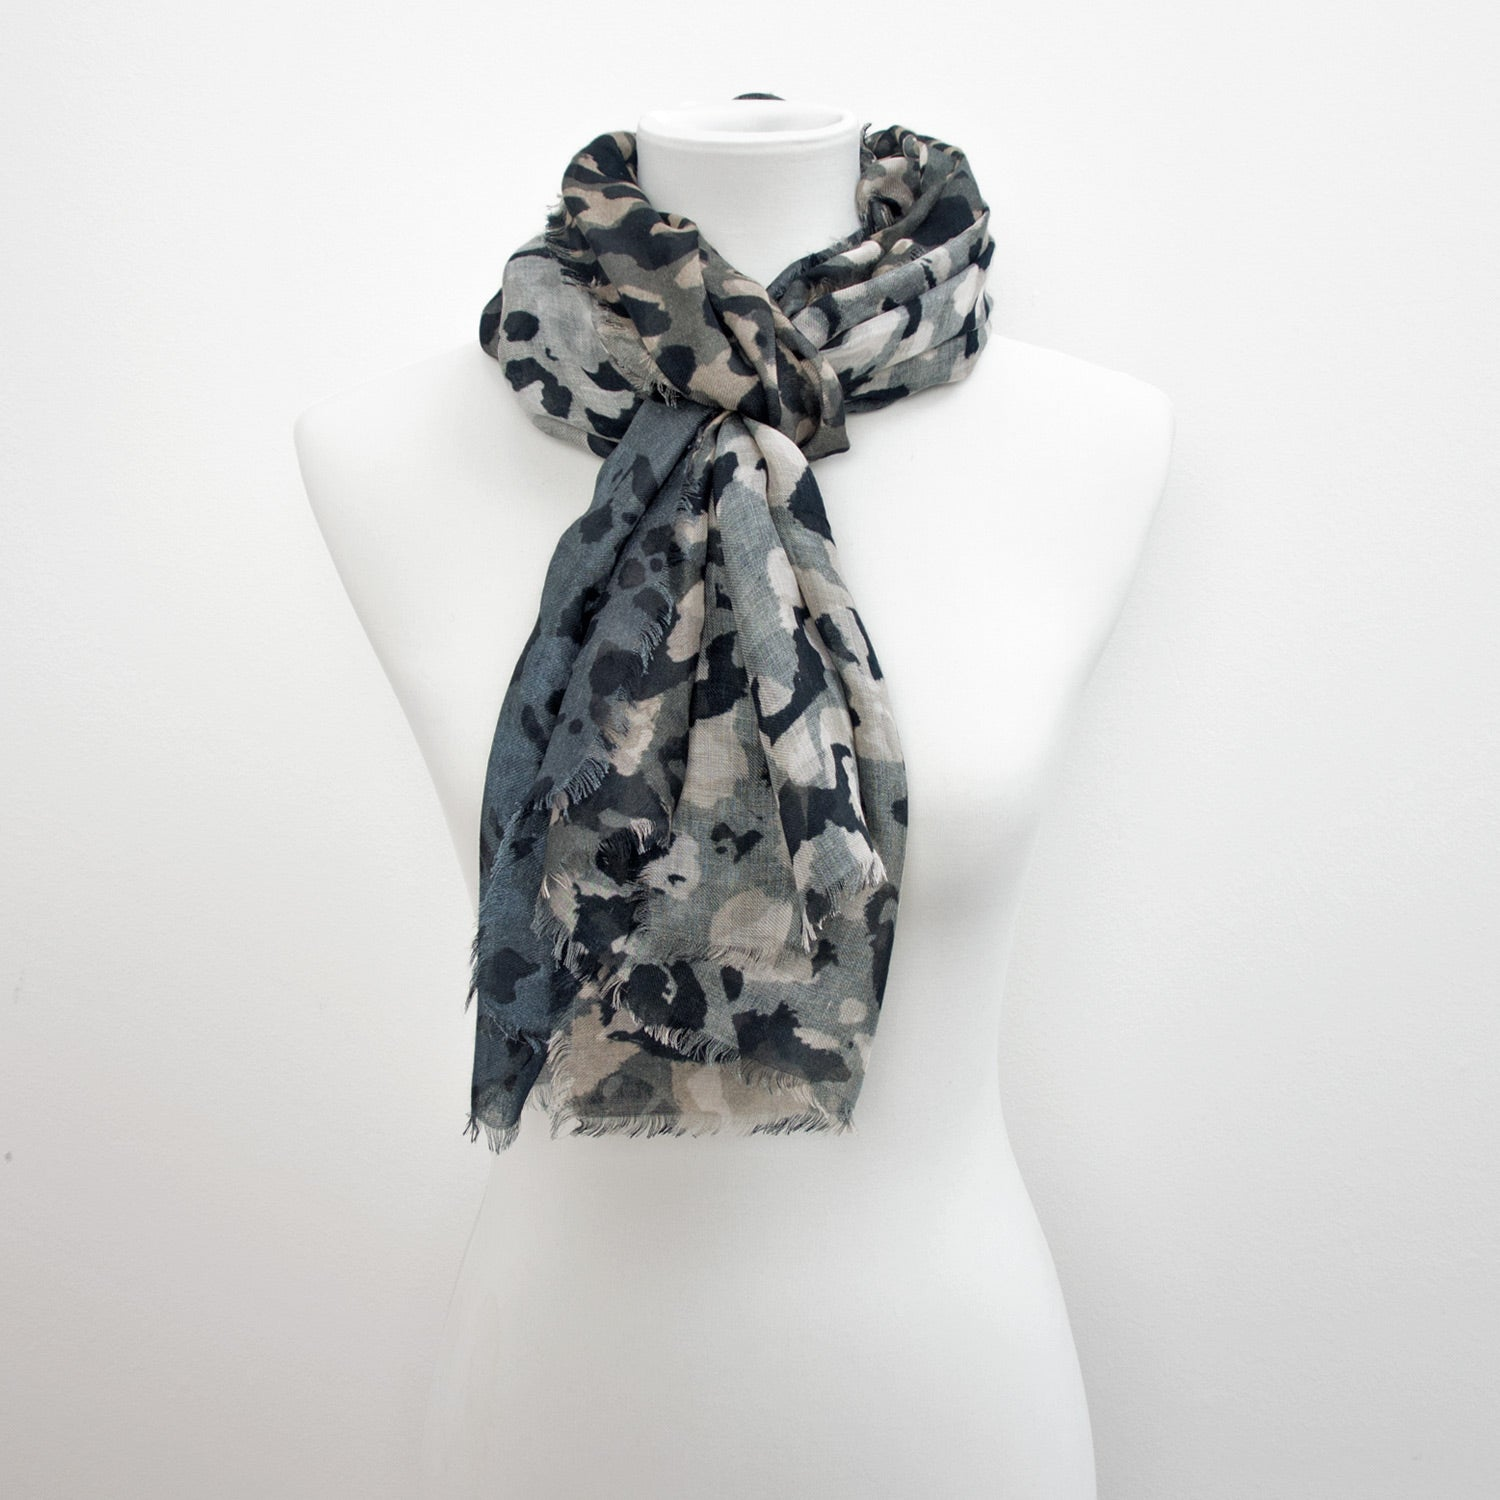 Doria & Dojola Camouflage Cashmere-Modal Scarf. 85% Modal 15% Cashmere  67 x 176 cm. 100% Made in Italy. Pictures in Blue/Grey.